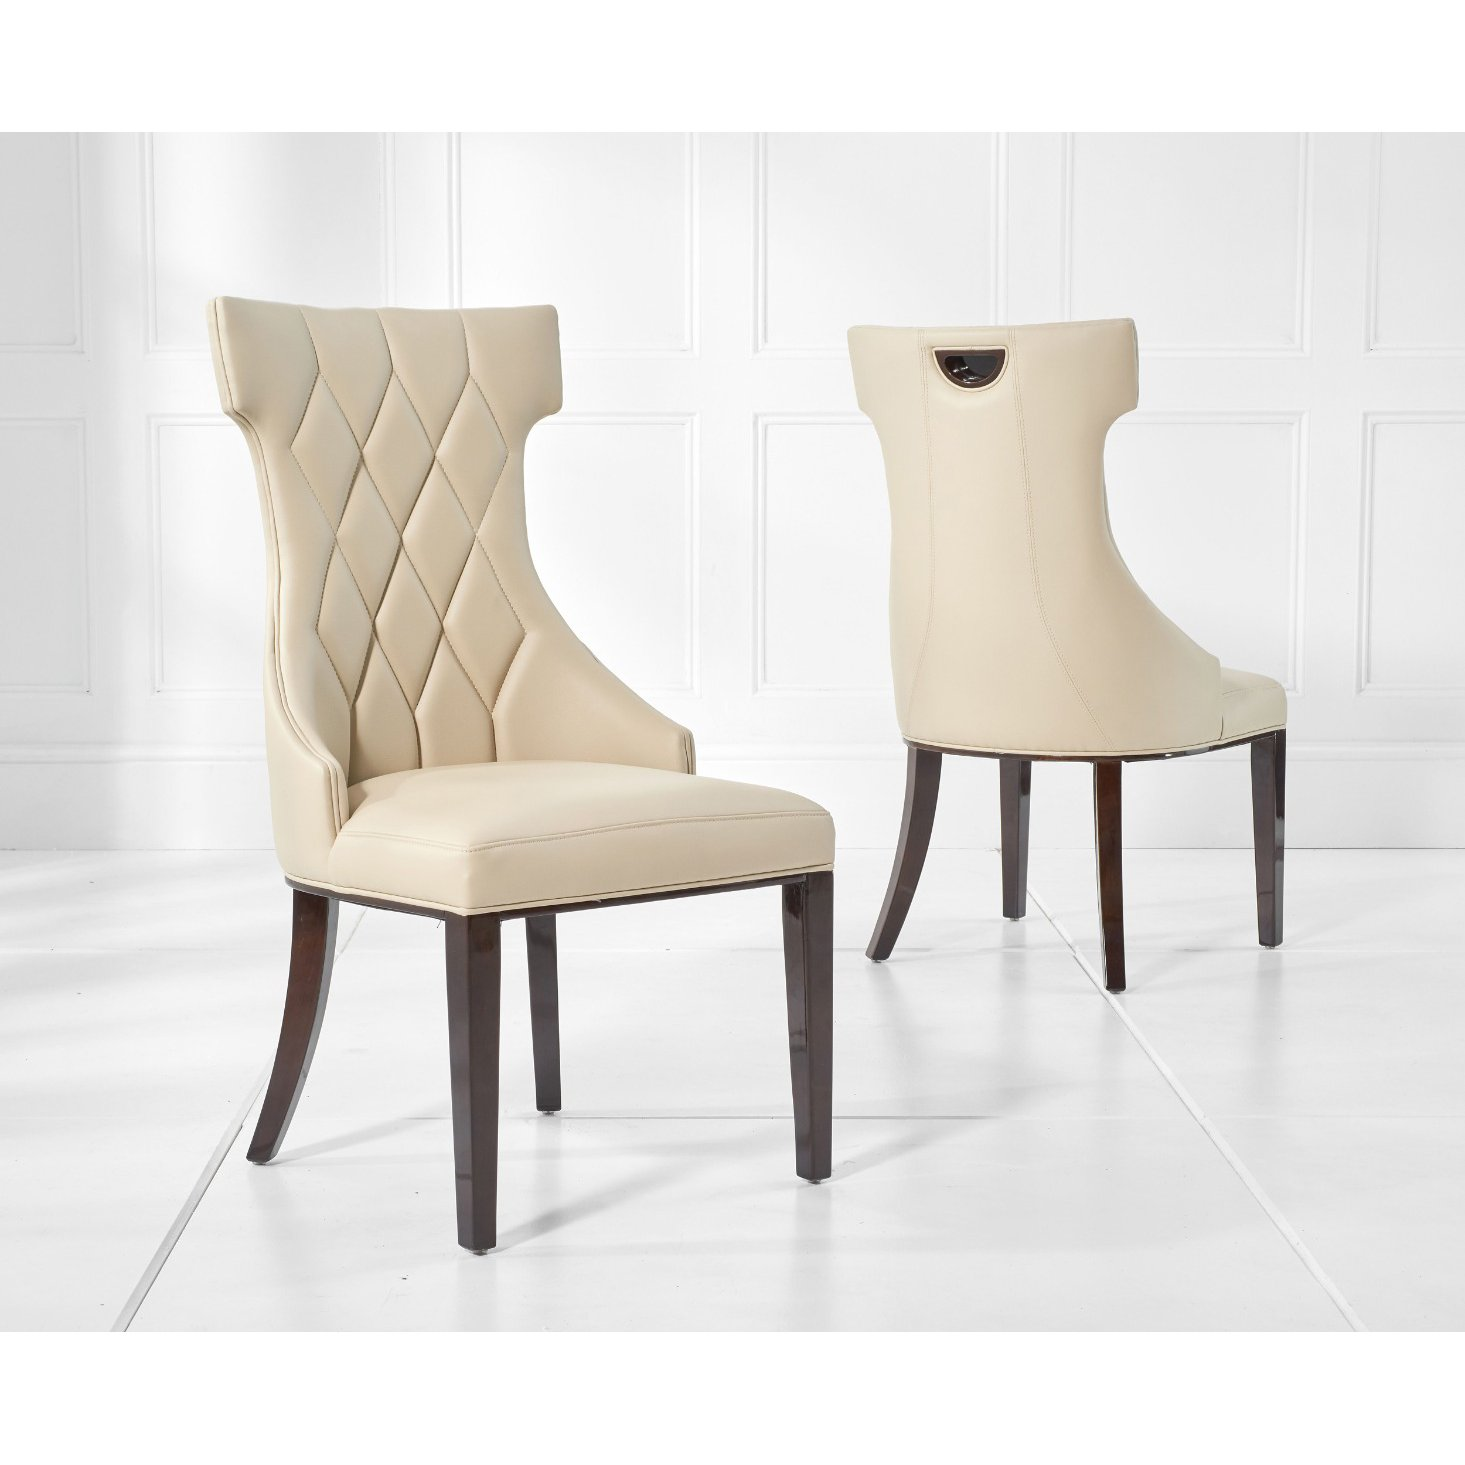 image-Freya Cream Faux Leather Dining Chairs